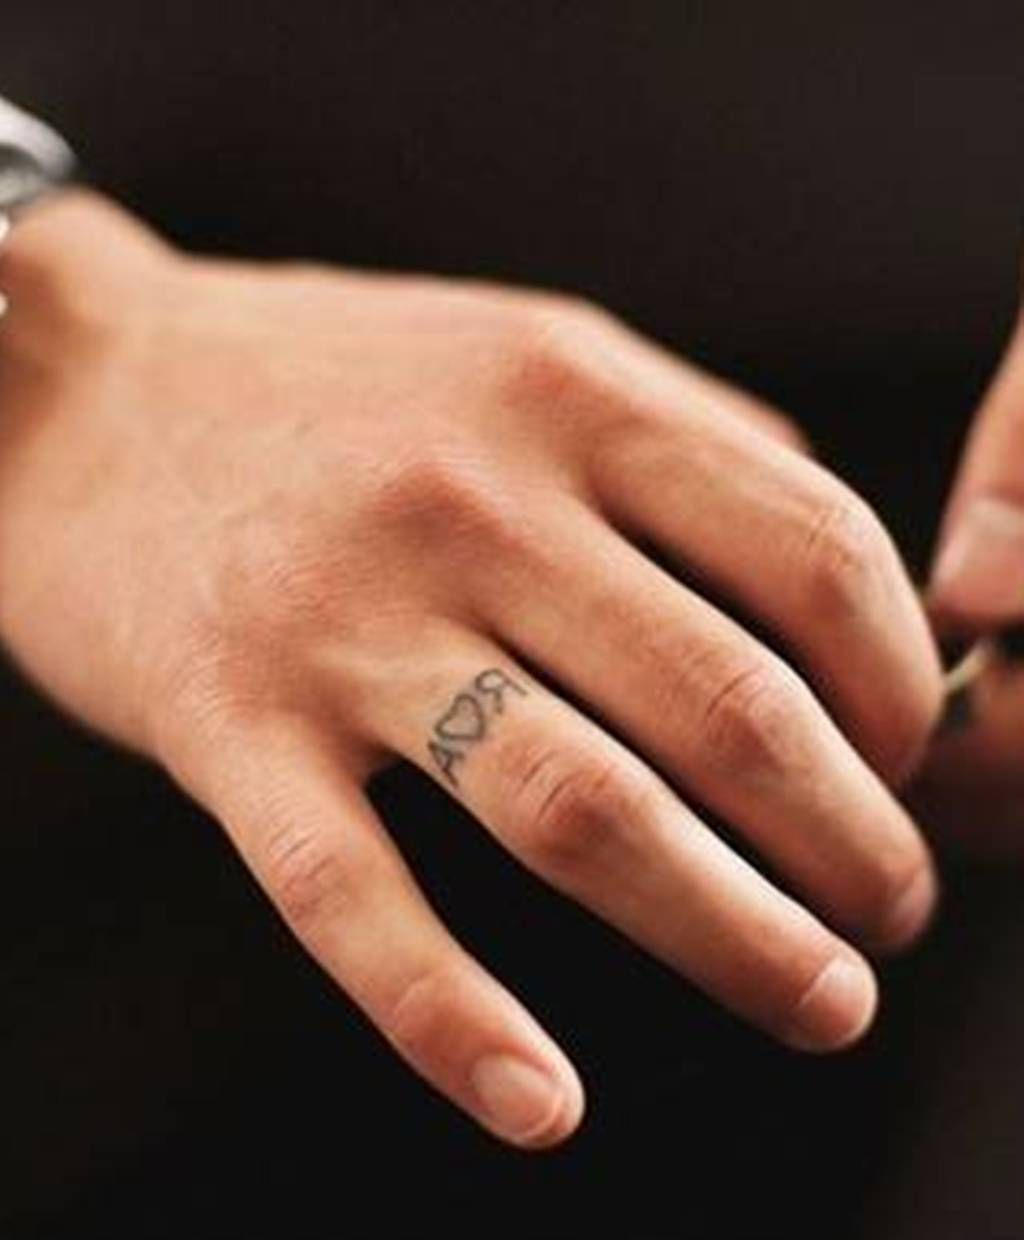 Faint Wedding Ring Tattoo Husband's Initials